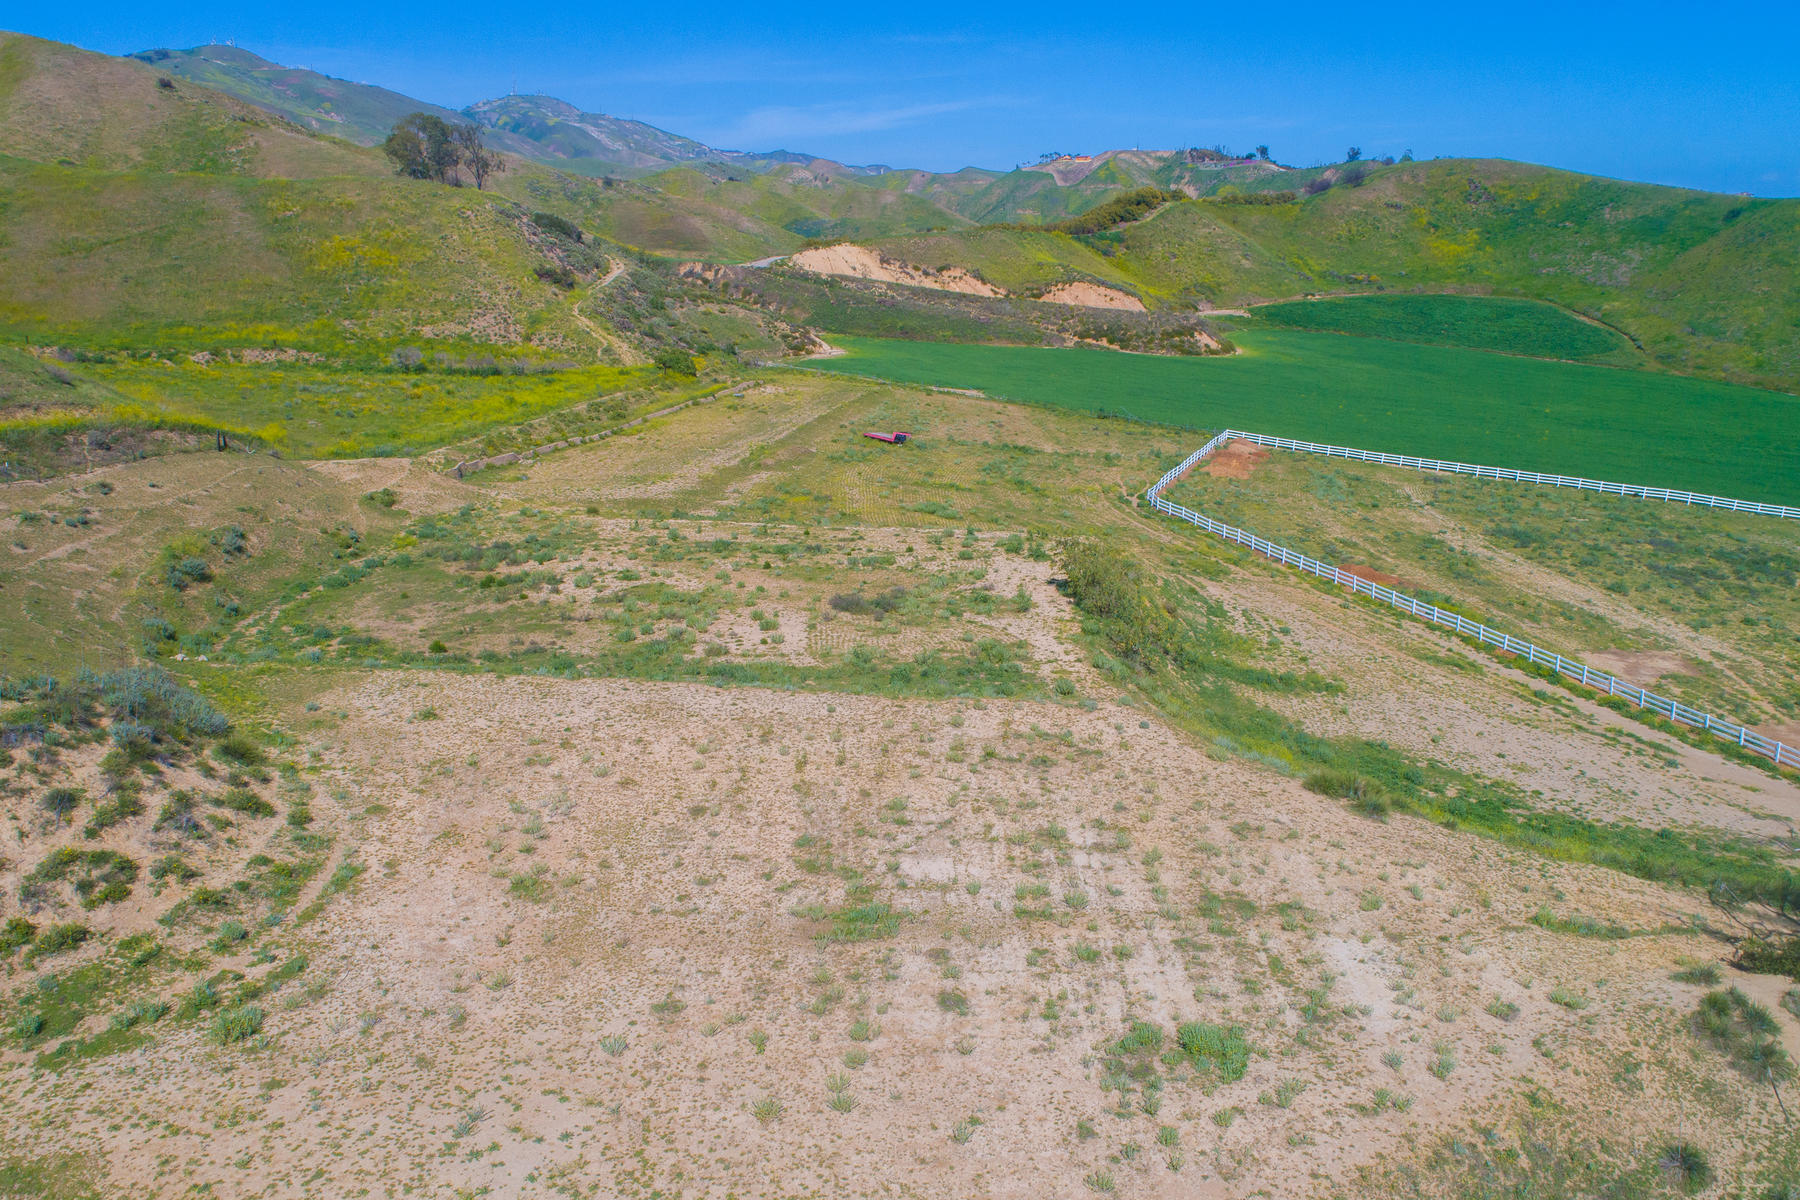 Land for Sale at Somis Land 533 1/3 E La Loma Somis, California 93066 United States